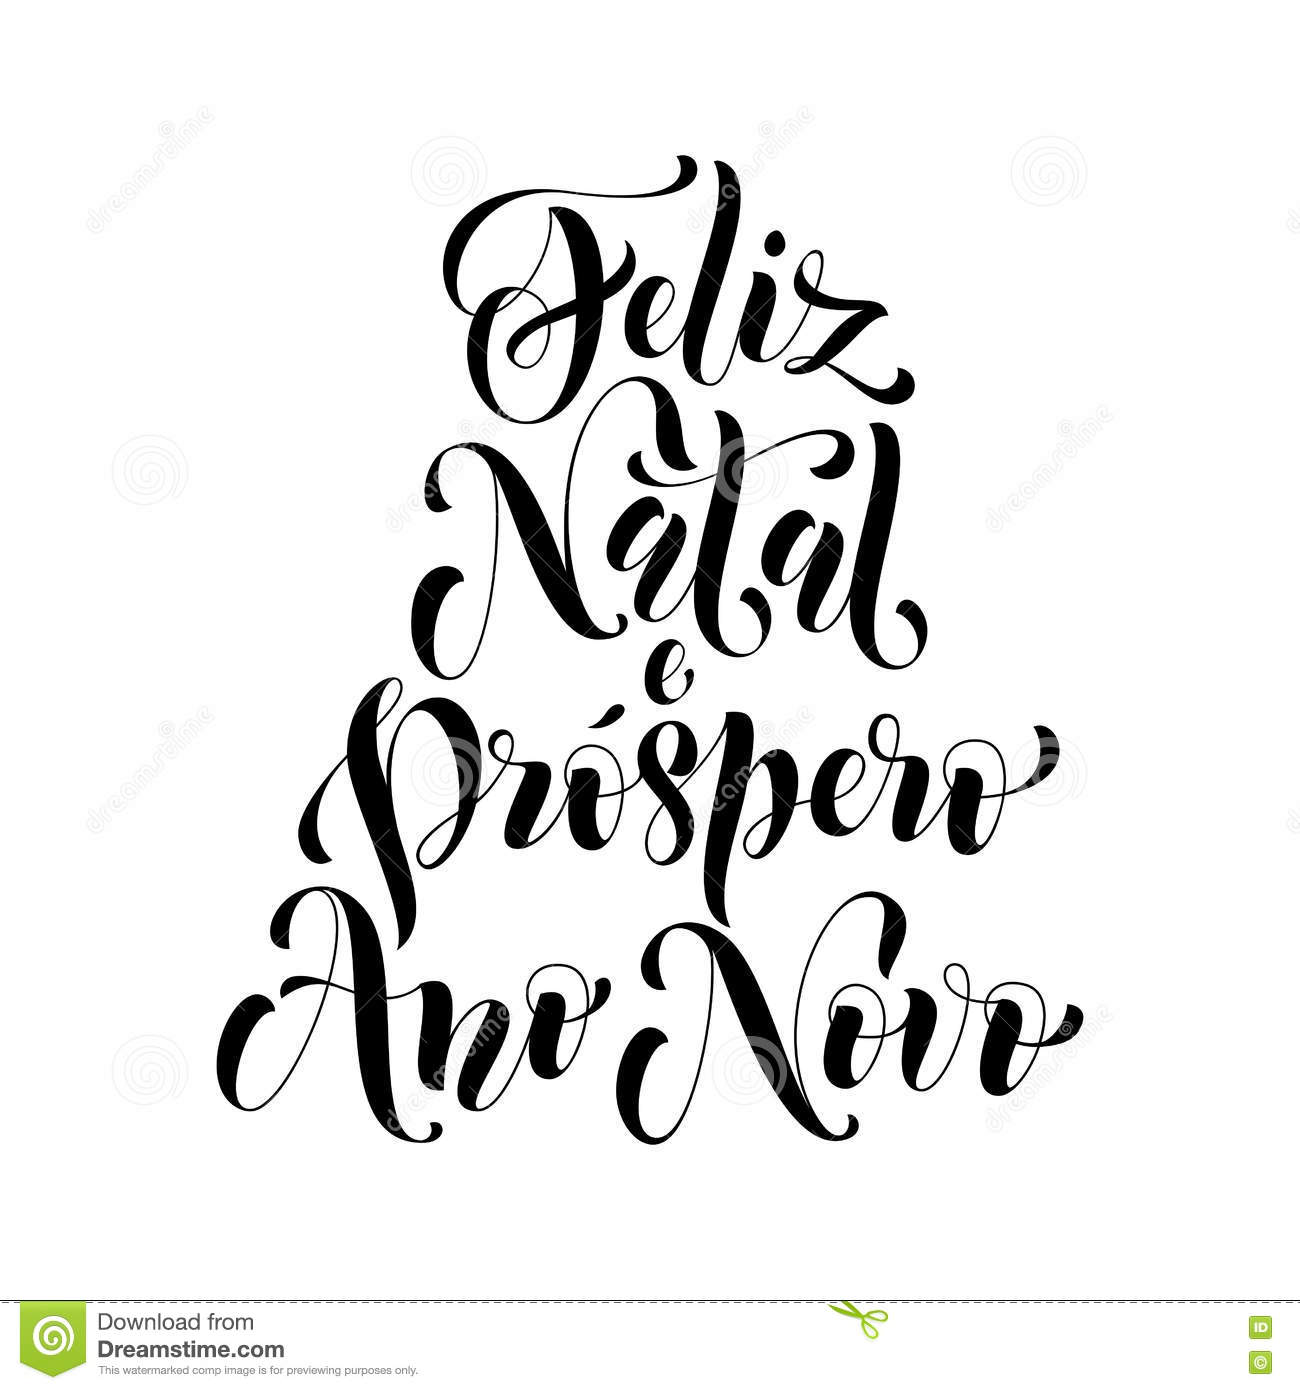 Feliz natal greeting portuguese merry christmas stock illustration feliz natal e prospero ano novo greeting for portuguese brazilian merry christmas xmas new year holiday card vector hand drawn festive text for banner m4hsunfo